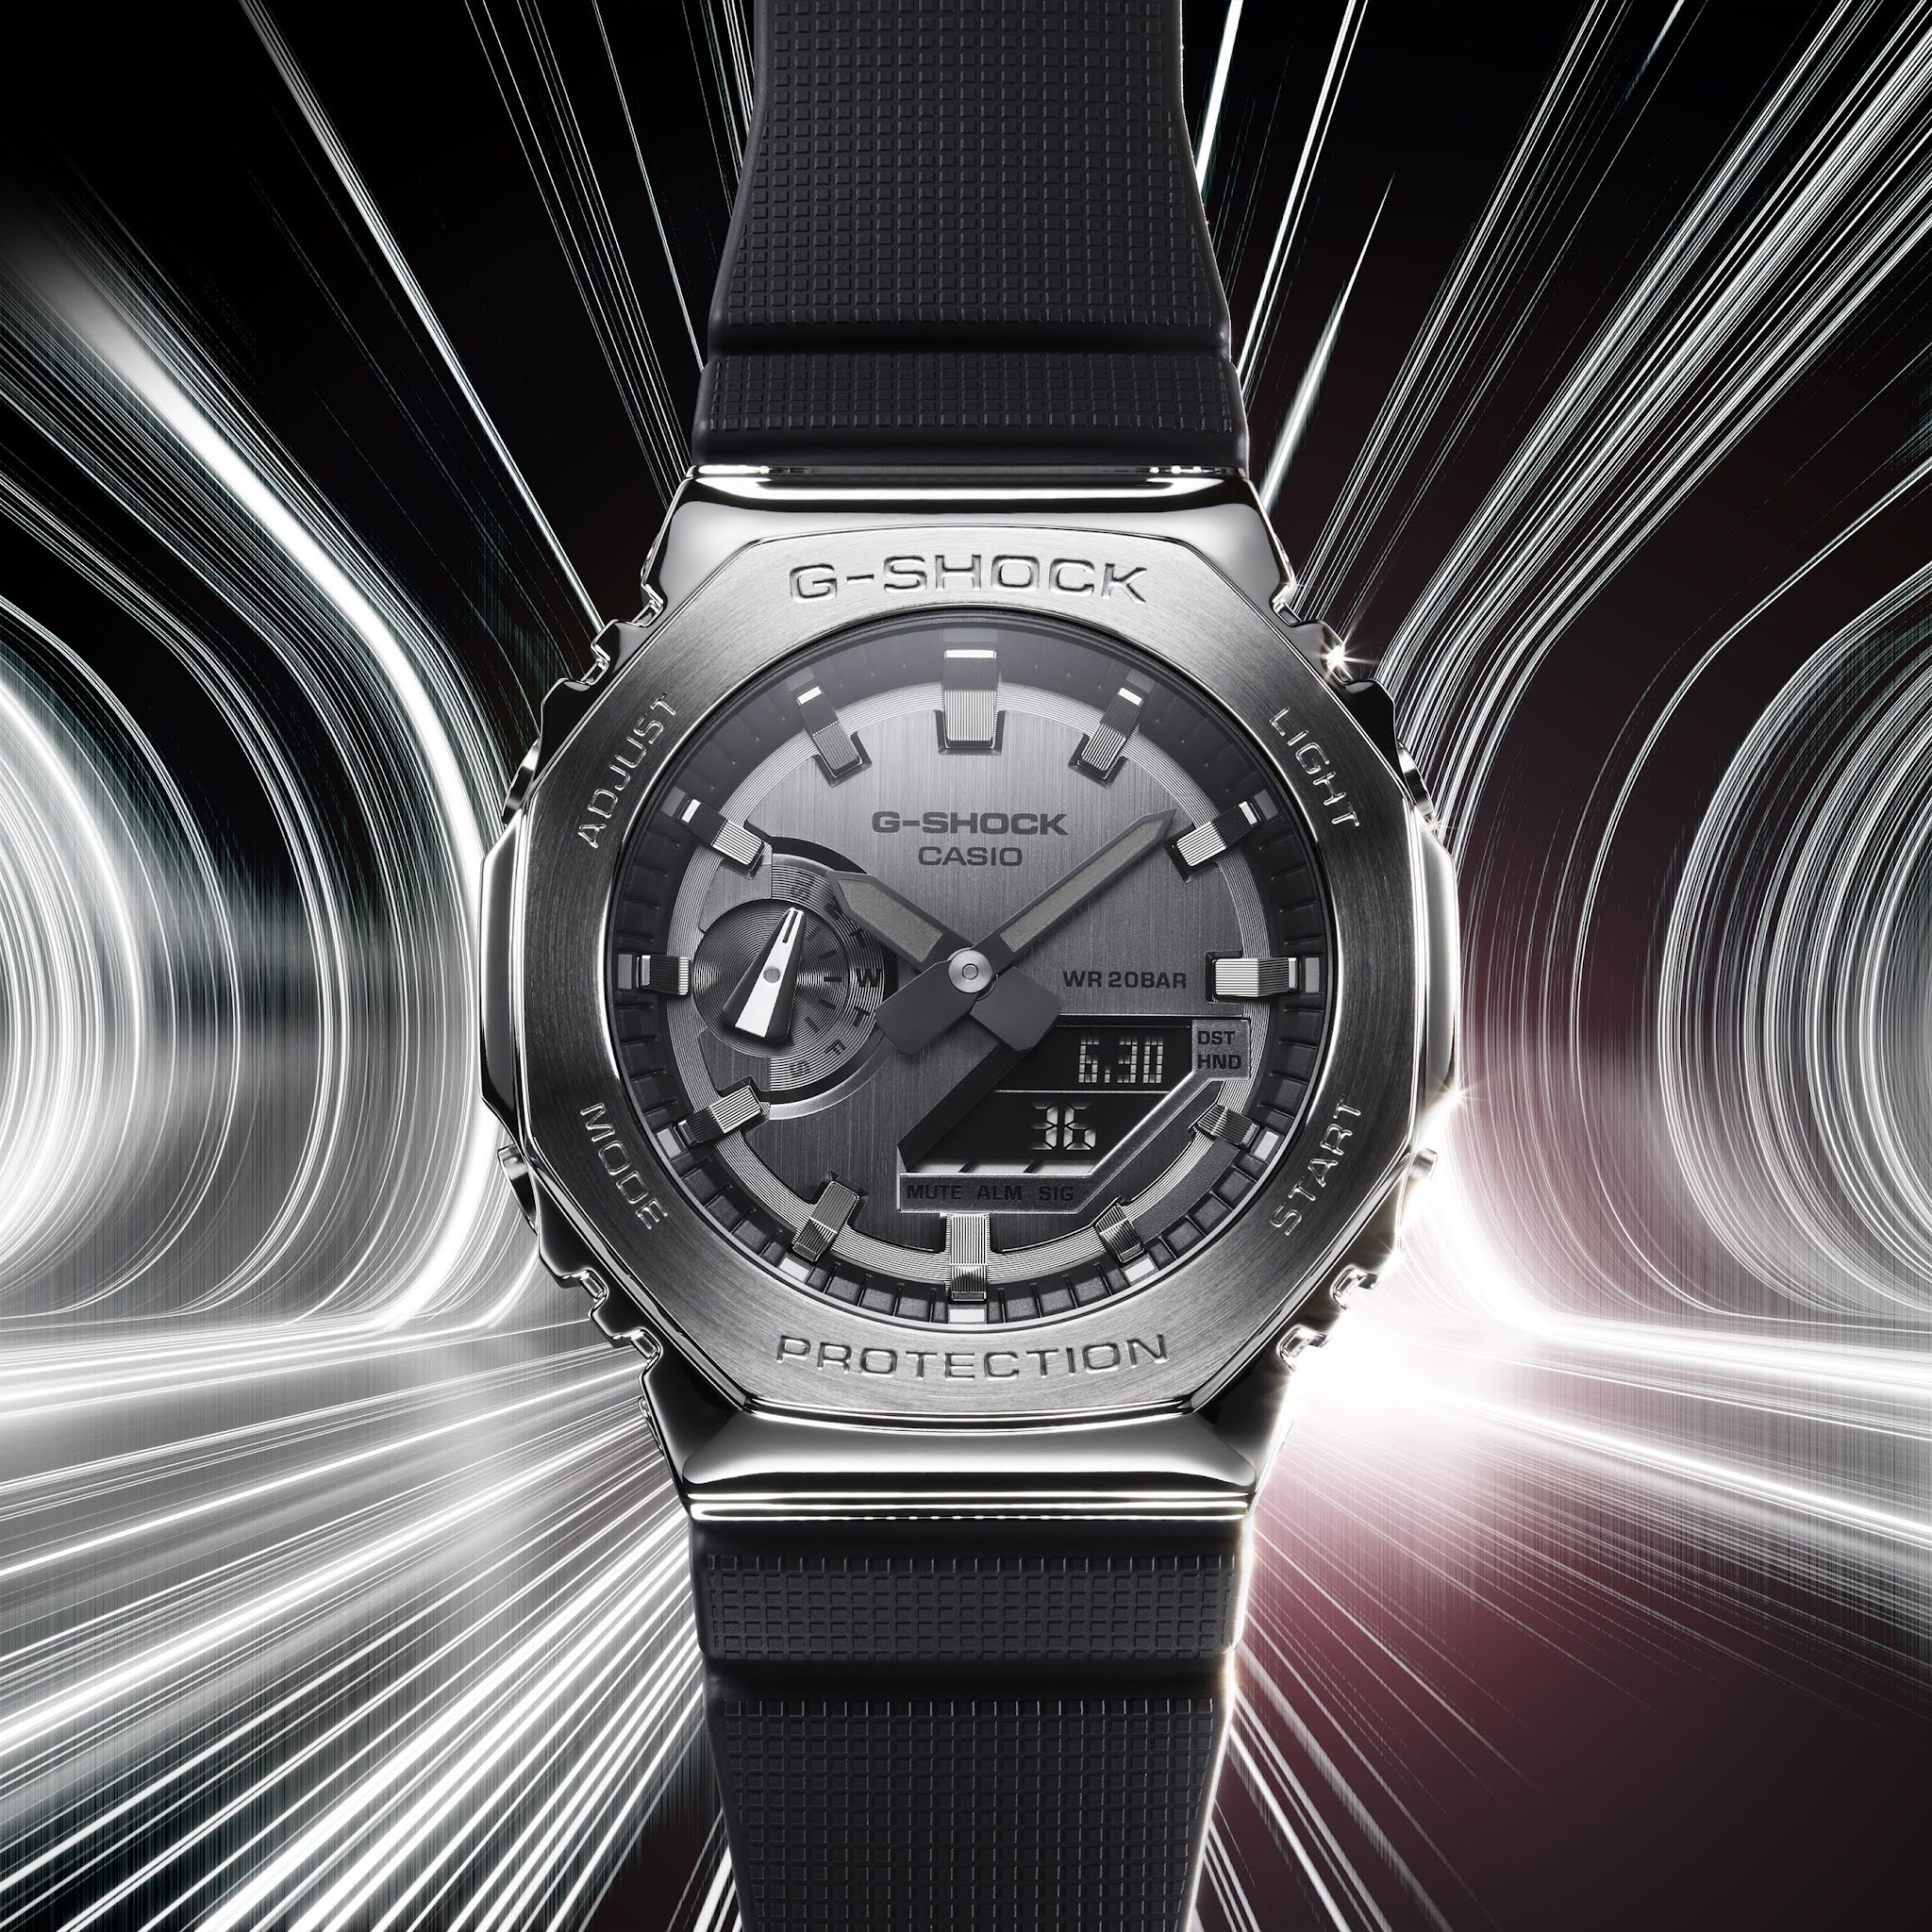 G-SHOCK Unveils All-New Series Of Metal Covered Watches